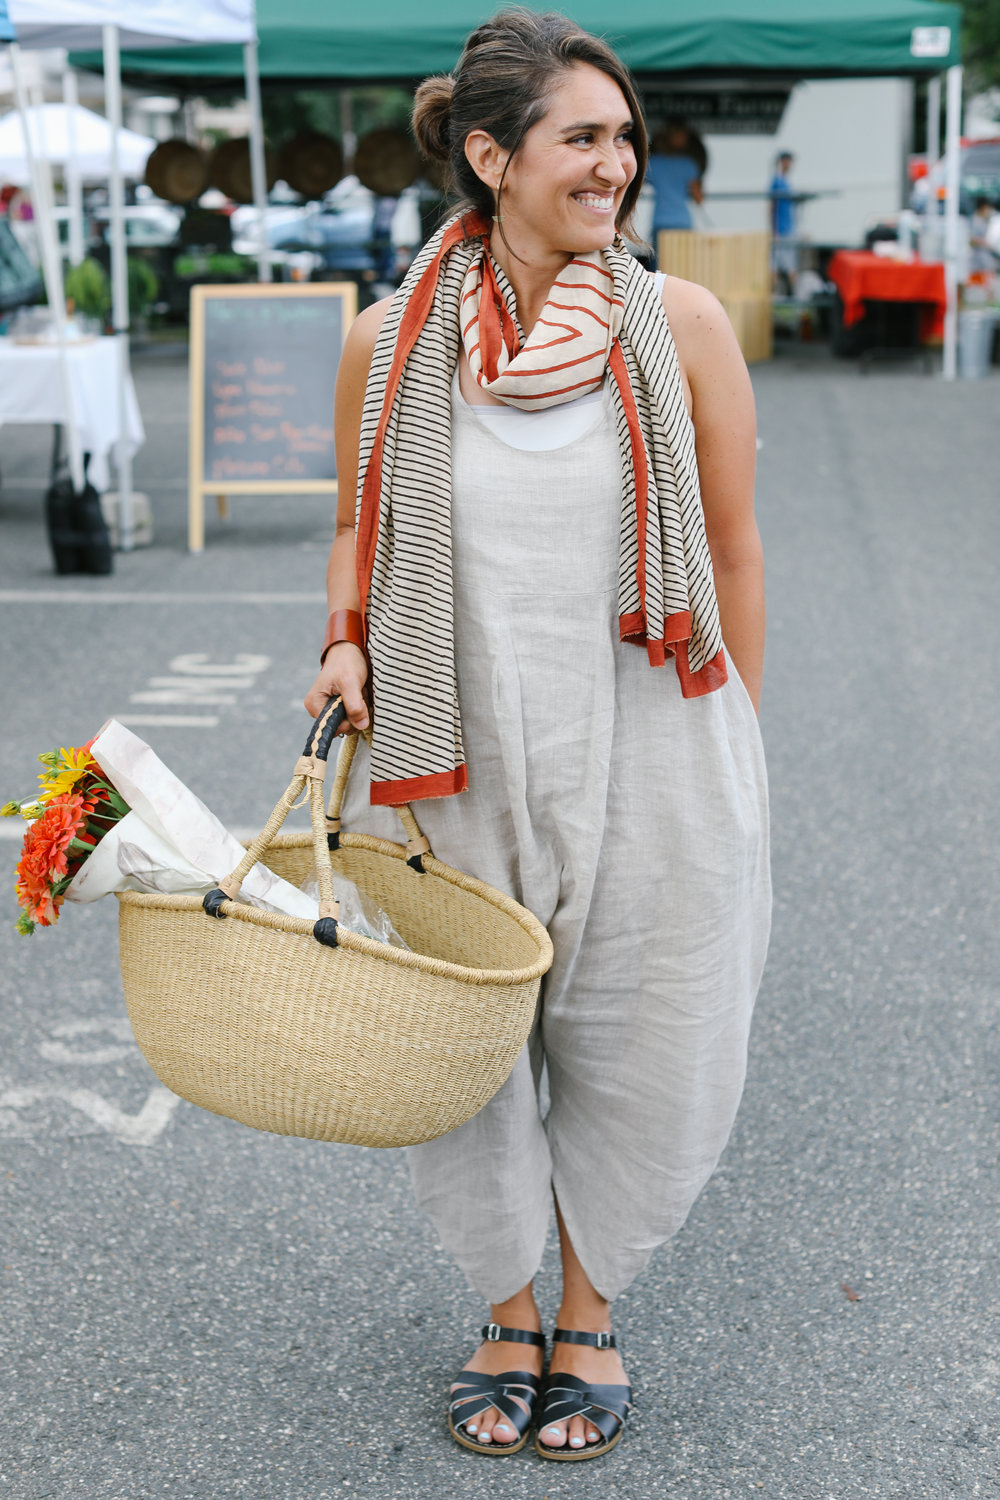 Linen jumper: Artists & Revolutionaries Scarf: Blockshop Textiles Sandals: Saltwater Sandals